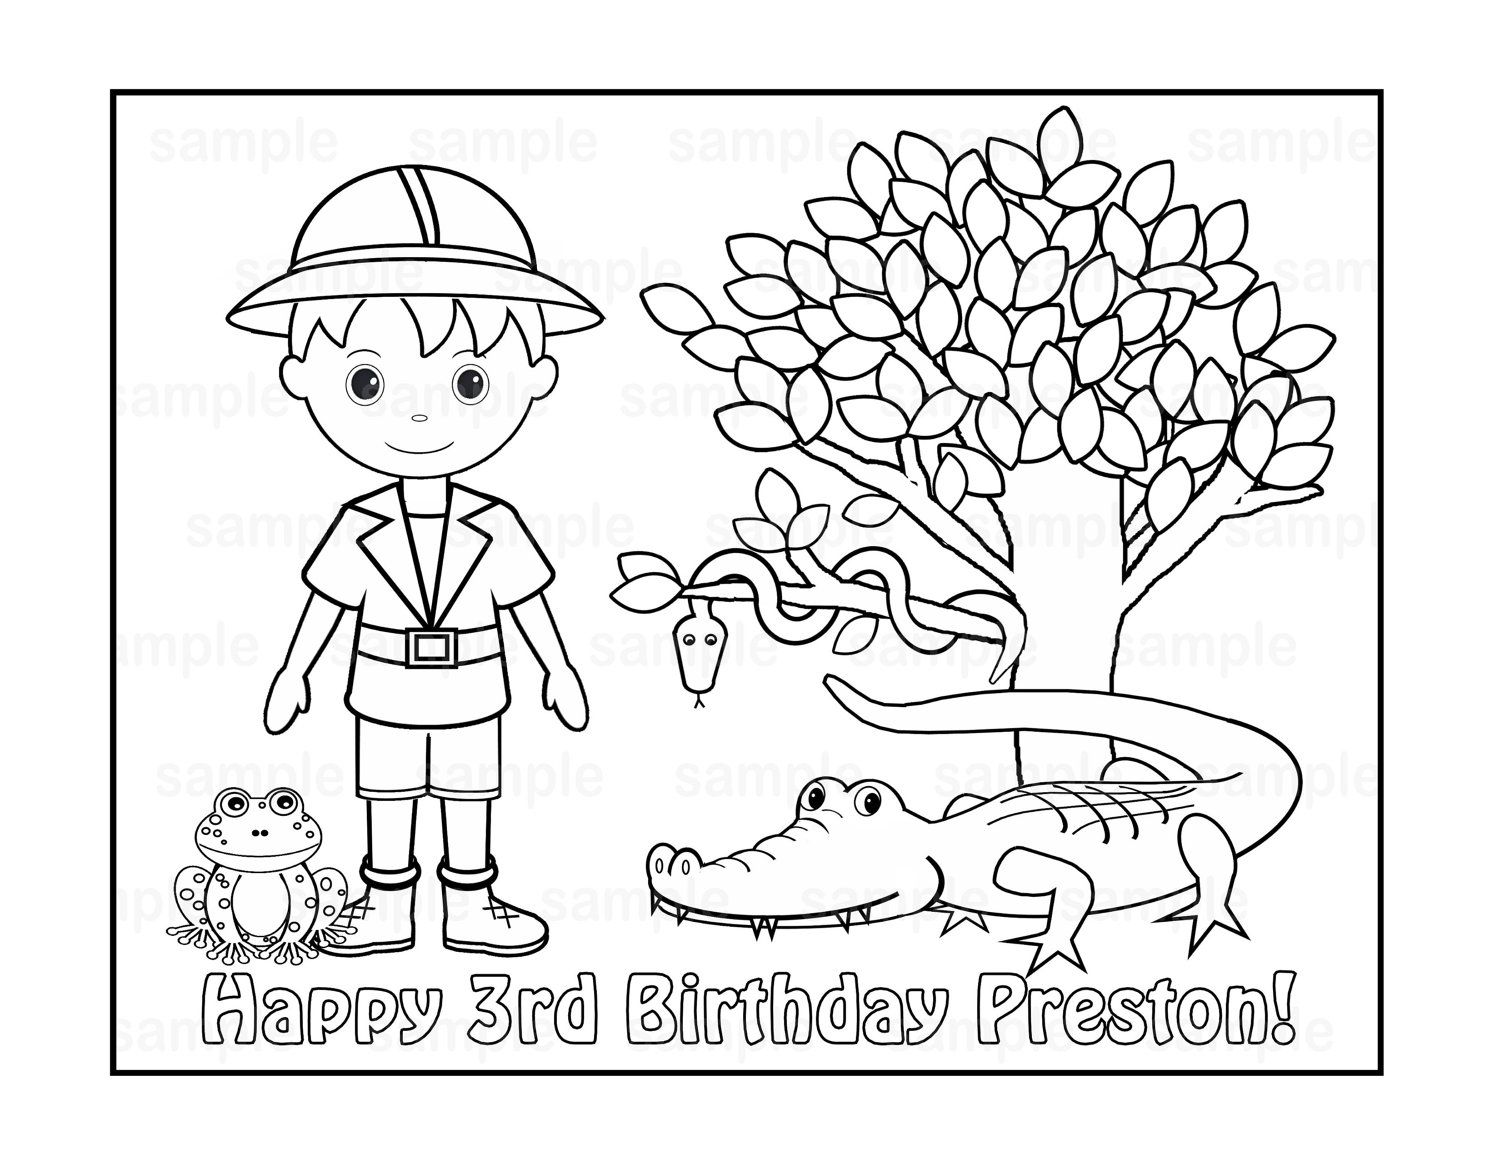 Free Jungle Printables Coloring Pages Jungle Coloring Pages Personalized Printable Safari Jungle G Animal Coloring Pages Coloring Pages Jungle Coloring Pages